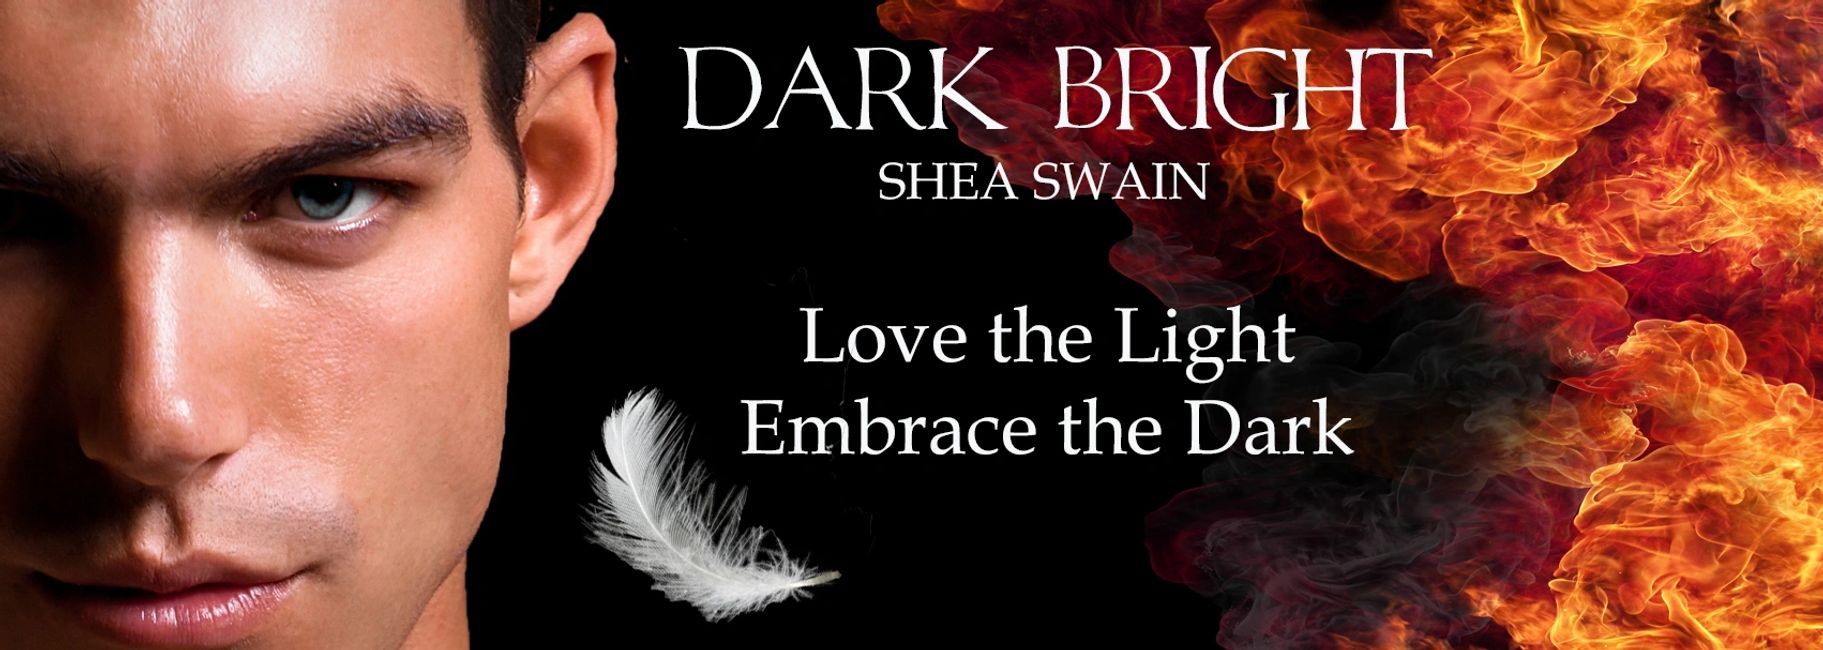 Dark Bright, Angel and Demons paranormal Romance by Shea Swain